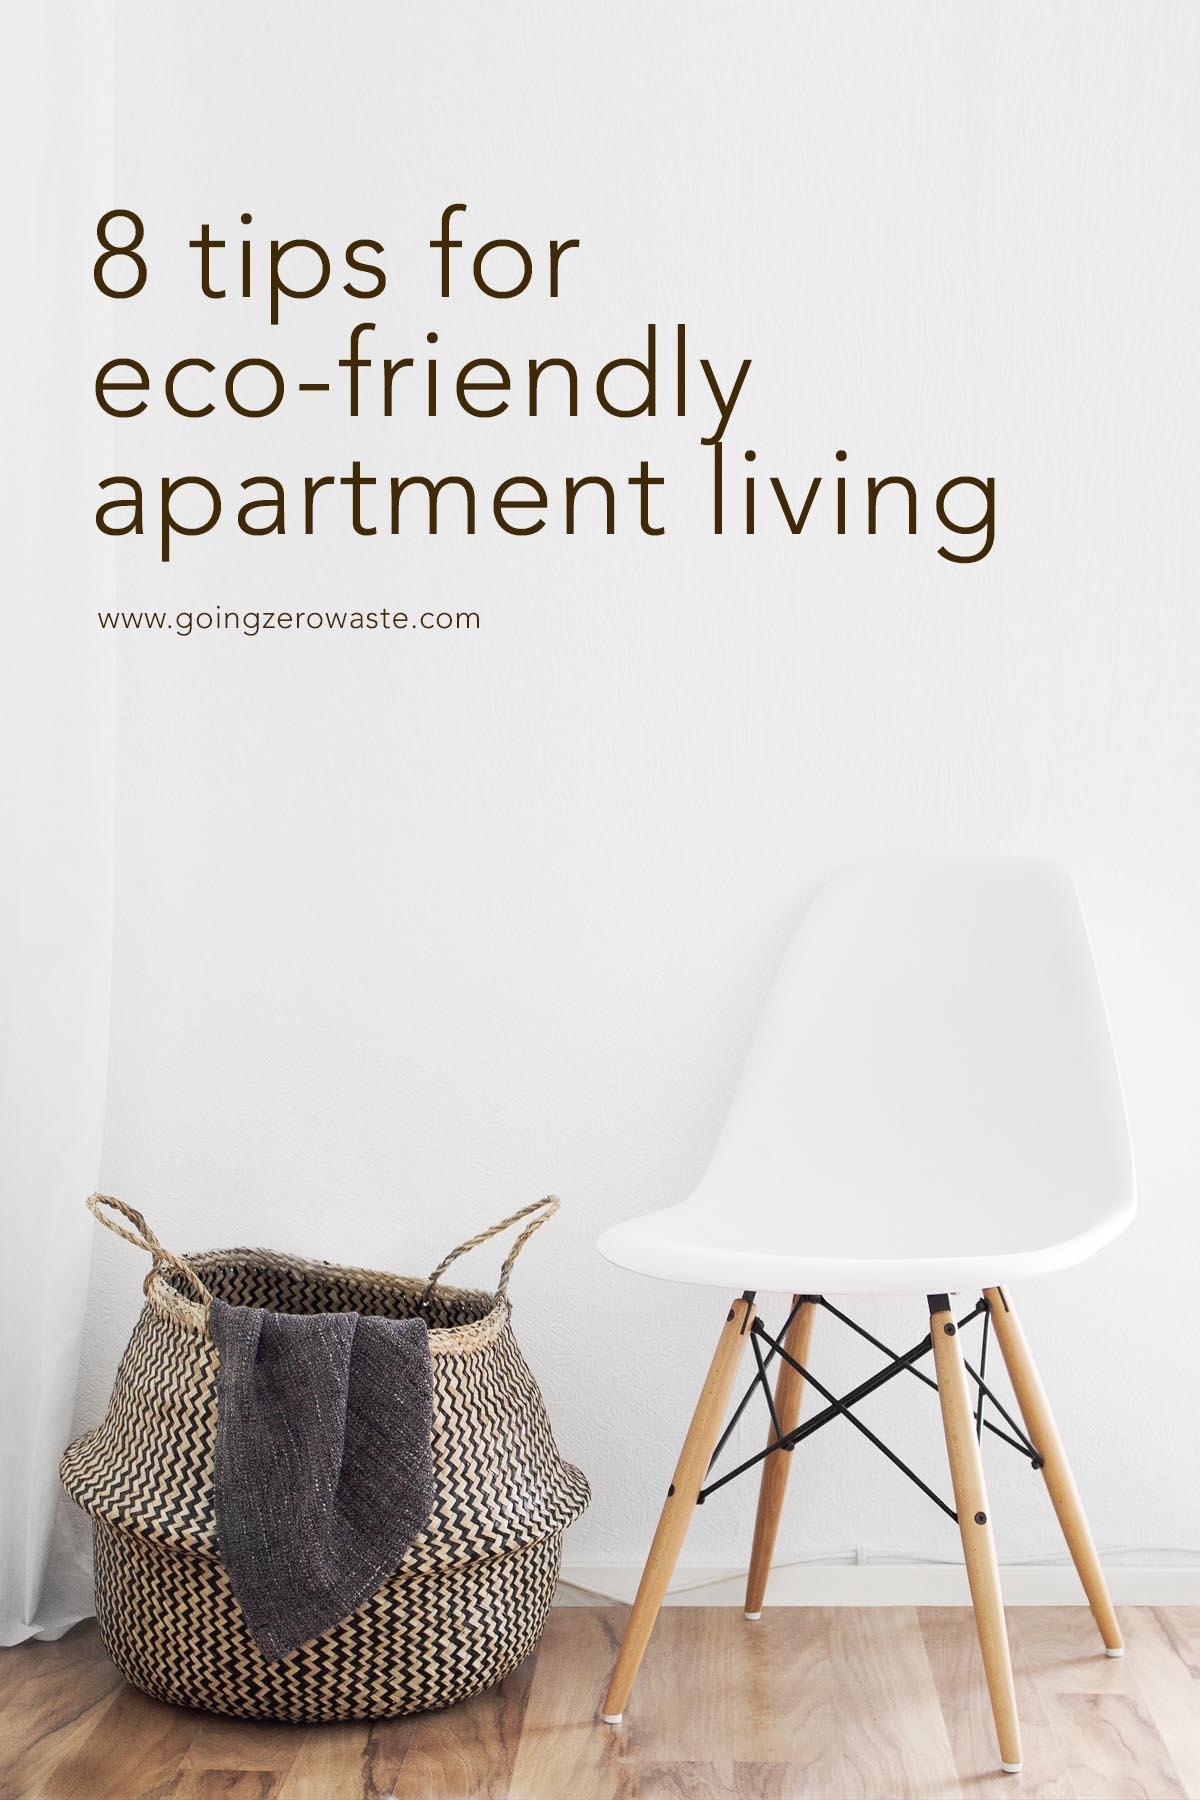 8 tips for eco-friendly apartment living from www.goingzerowaste.com #ecofriendly #apartment #sustainable #apartmentliving